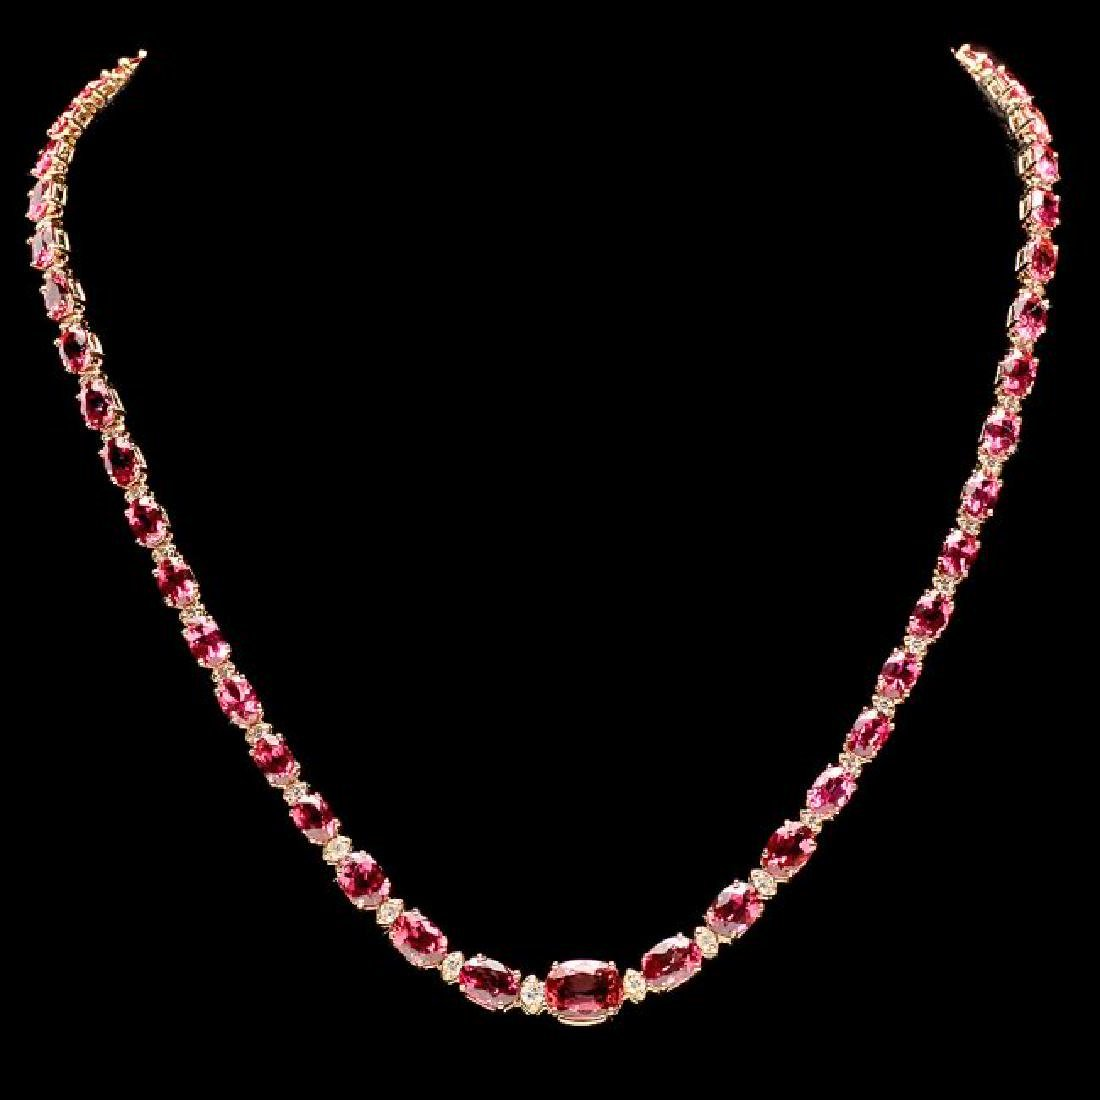 14k 26.10ct Tourmaline 1.60ct Diamond Necklace